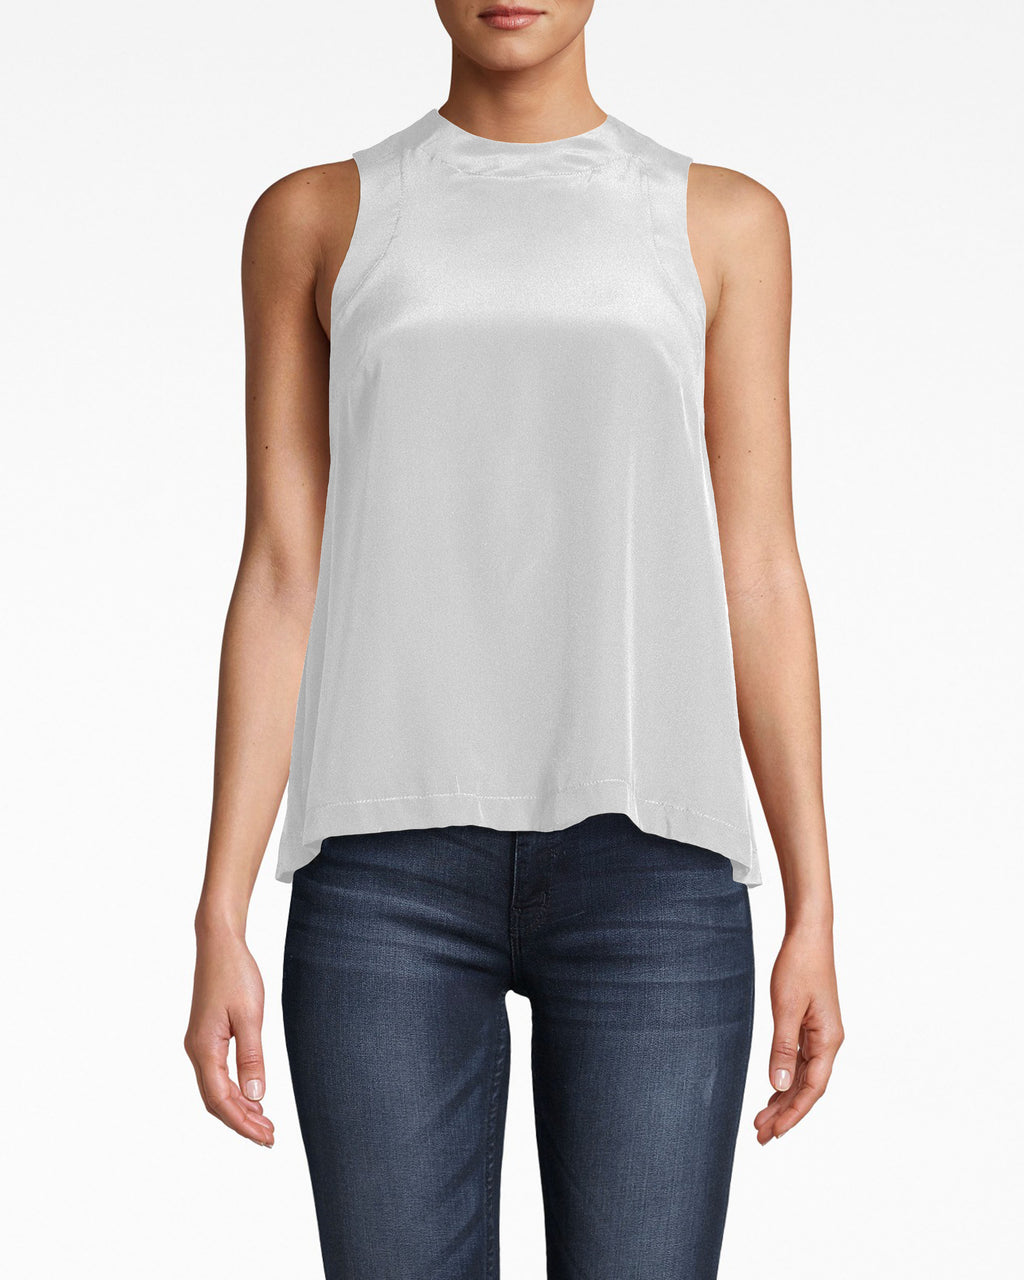 AO10053 - SOLID SILK BLEND TANK TOP - tops - blouses - YOUR NEW EVERYDAY TANK. MADE FROM SOLID SILK AND FEATURING A HIGH NECK, THIS INSTANTLY MAKES ANY OUTFIT A LITTLE CHICER. A SMALL KEYHOLE ON THE BACK IS A SUBTLE SEXY TOUCH. BUTTON FOR CLOSURE.